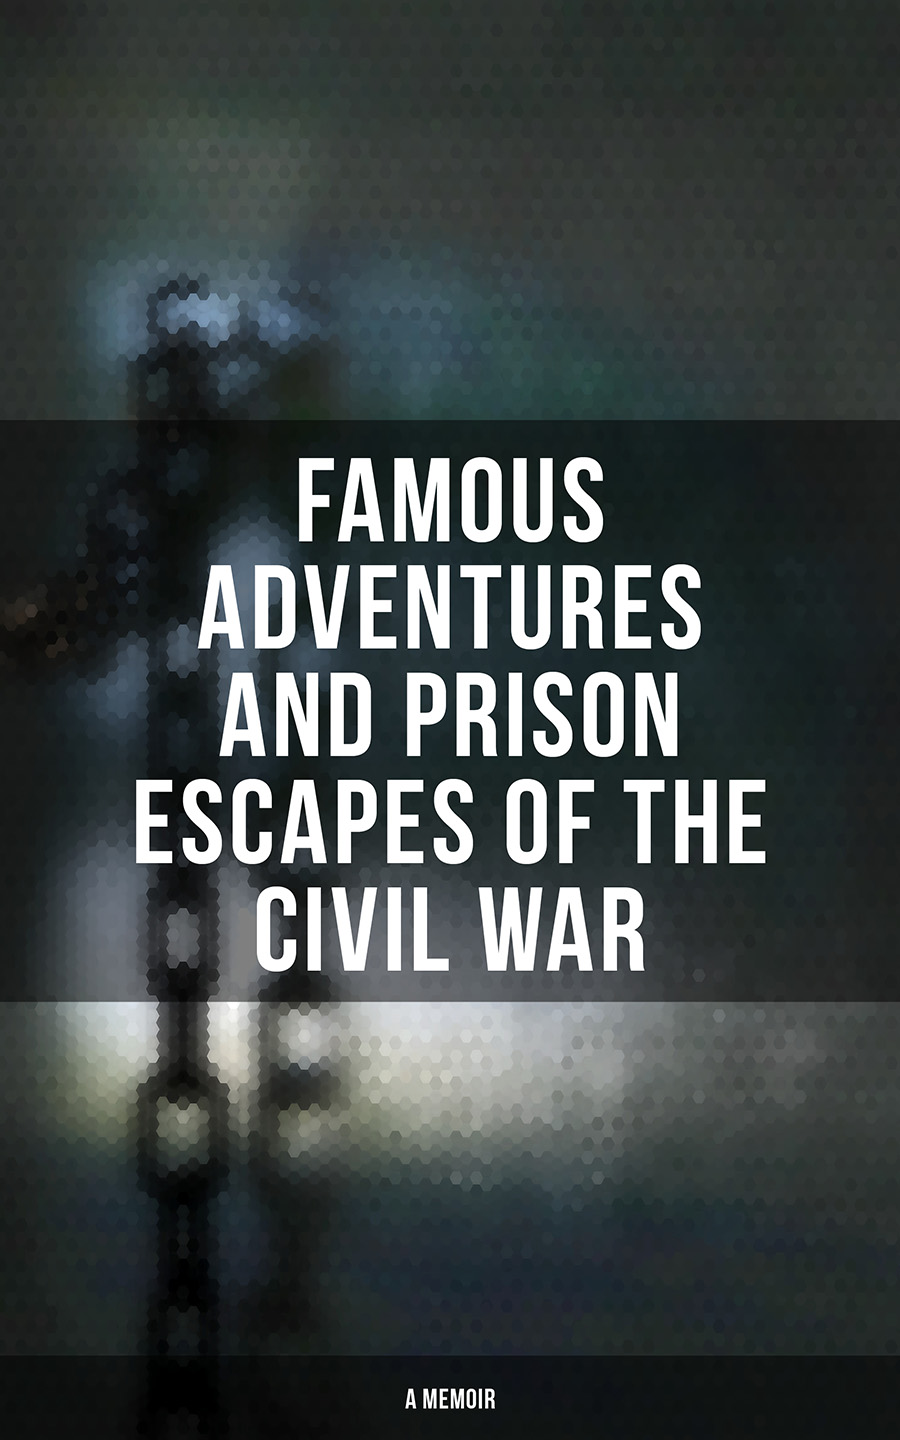 William Pittenger Famous Adventures and Prison Escapes of the Civil War (A Memoir) judyth gregory smith myanmar a memoir of loss and recovery